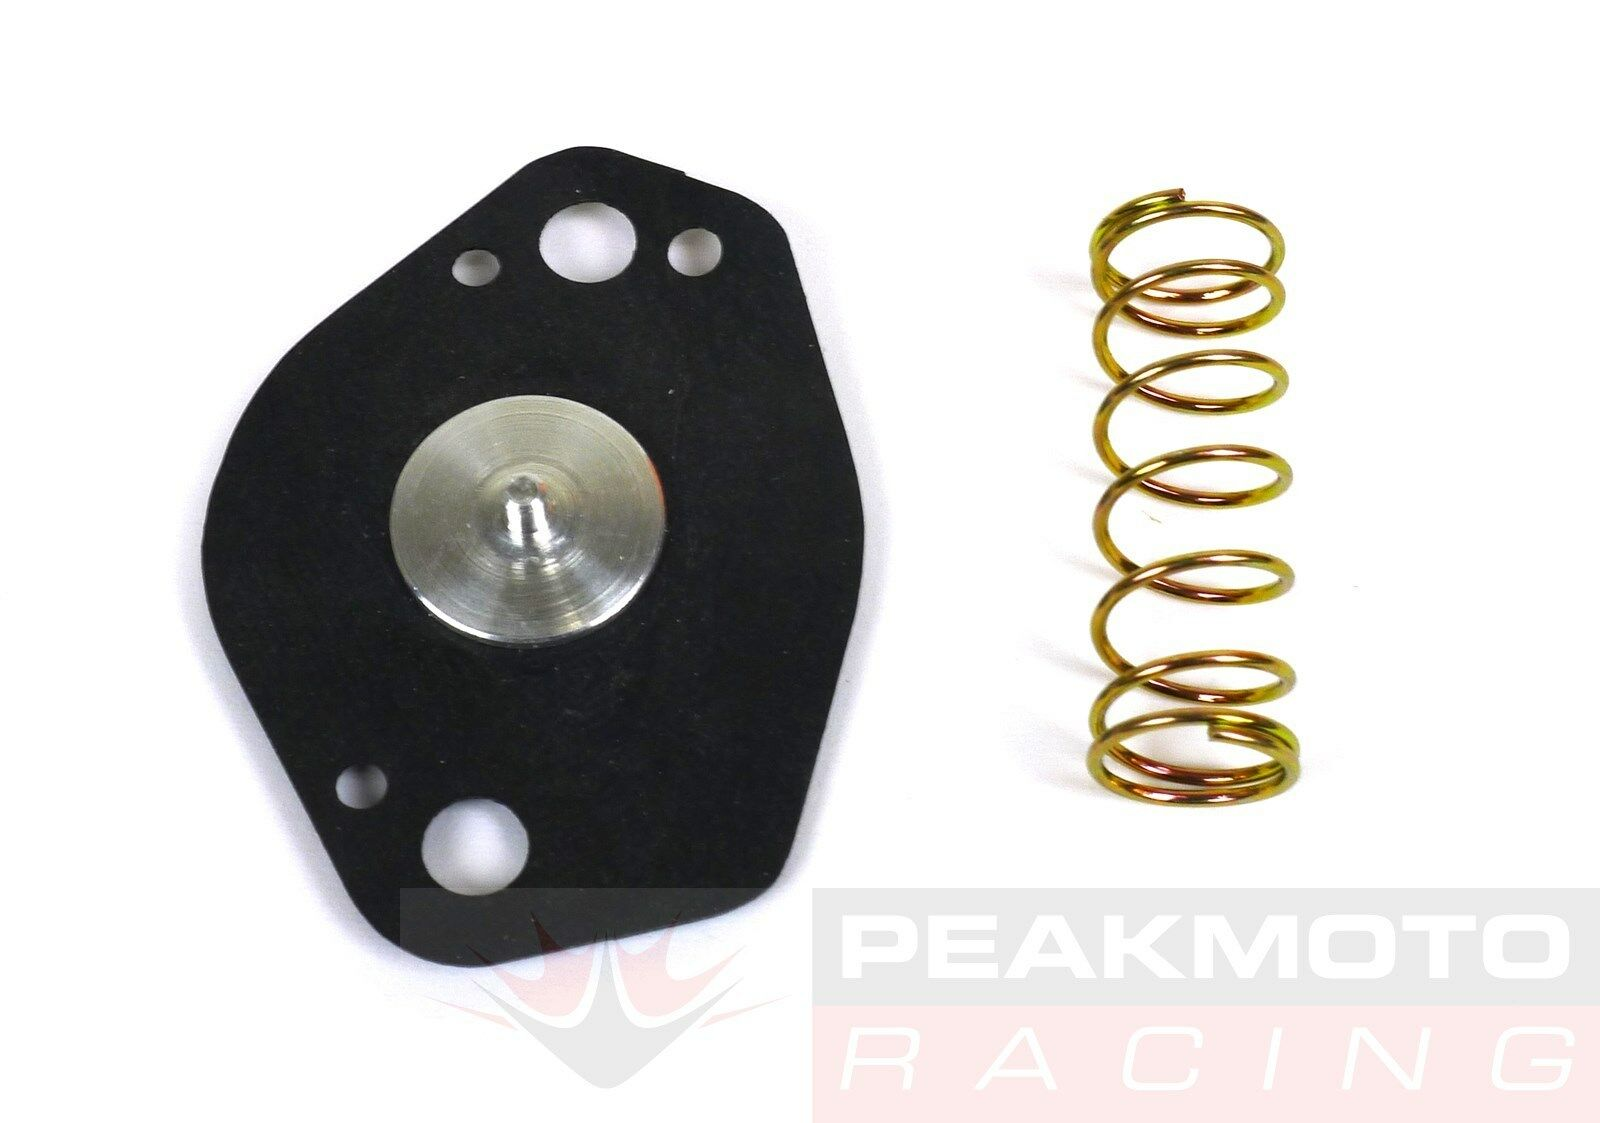 New Carburetor Rebuild Kit for Yamaha FZ1 01 02 03 04 05